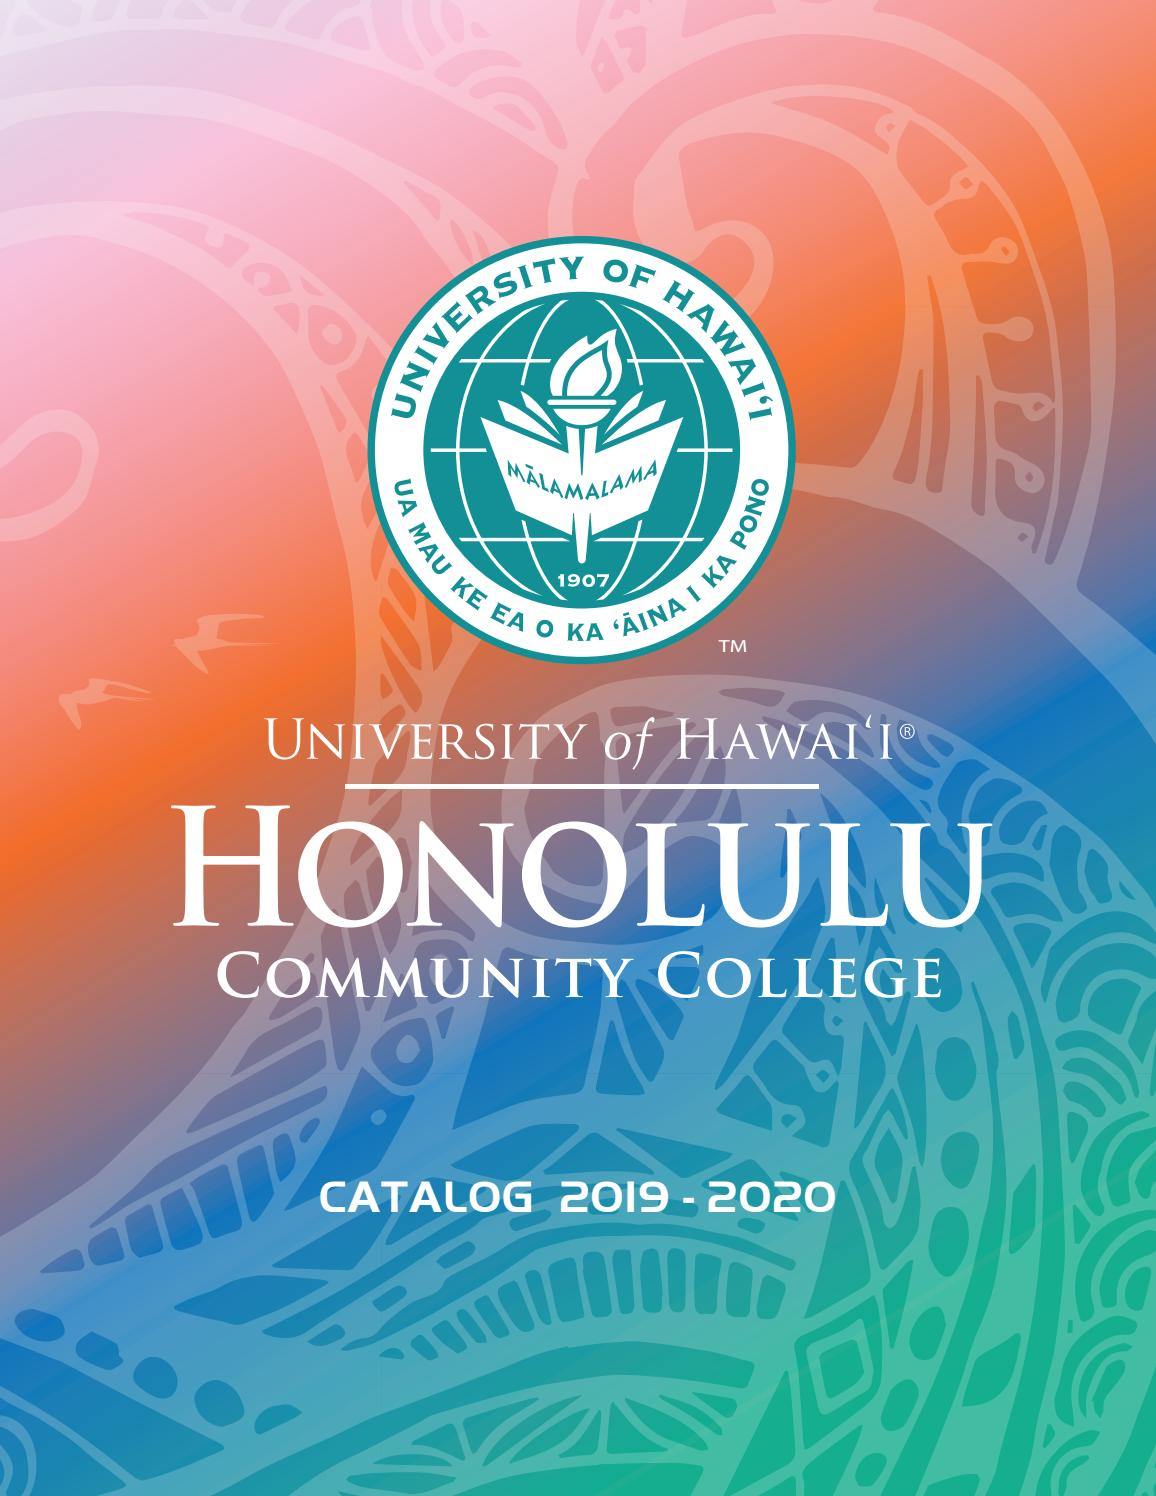 2019-2020 College Catalog by Honolulu Community College - issuu on ut arlington campus map pdf, cu boulder campus map pdf, iu bloomington campus map pdf, ucla campus map pdf, cwru campus map pdf, ysu campus map pdf, csub campus map pdf, sjsu campus map pdf, rollins college campus map pdf, csula campus map pdf, uw-madison campus map pdf, umass boston campus map pdf, usc campus map pdf, umass amherst campus map pdf, uc davis campus map pdf, iub campus map pdf, csuf campus map pdf, uccs campus map pdf,